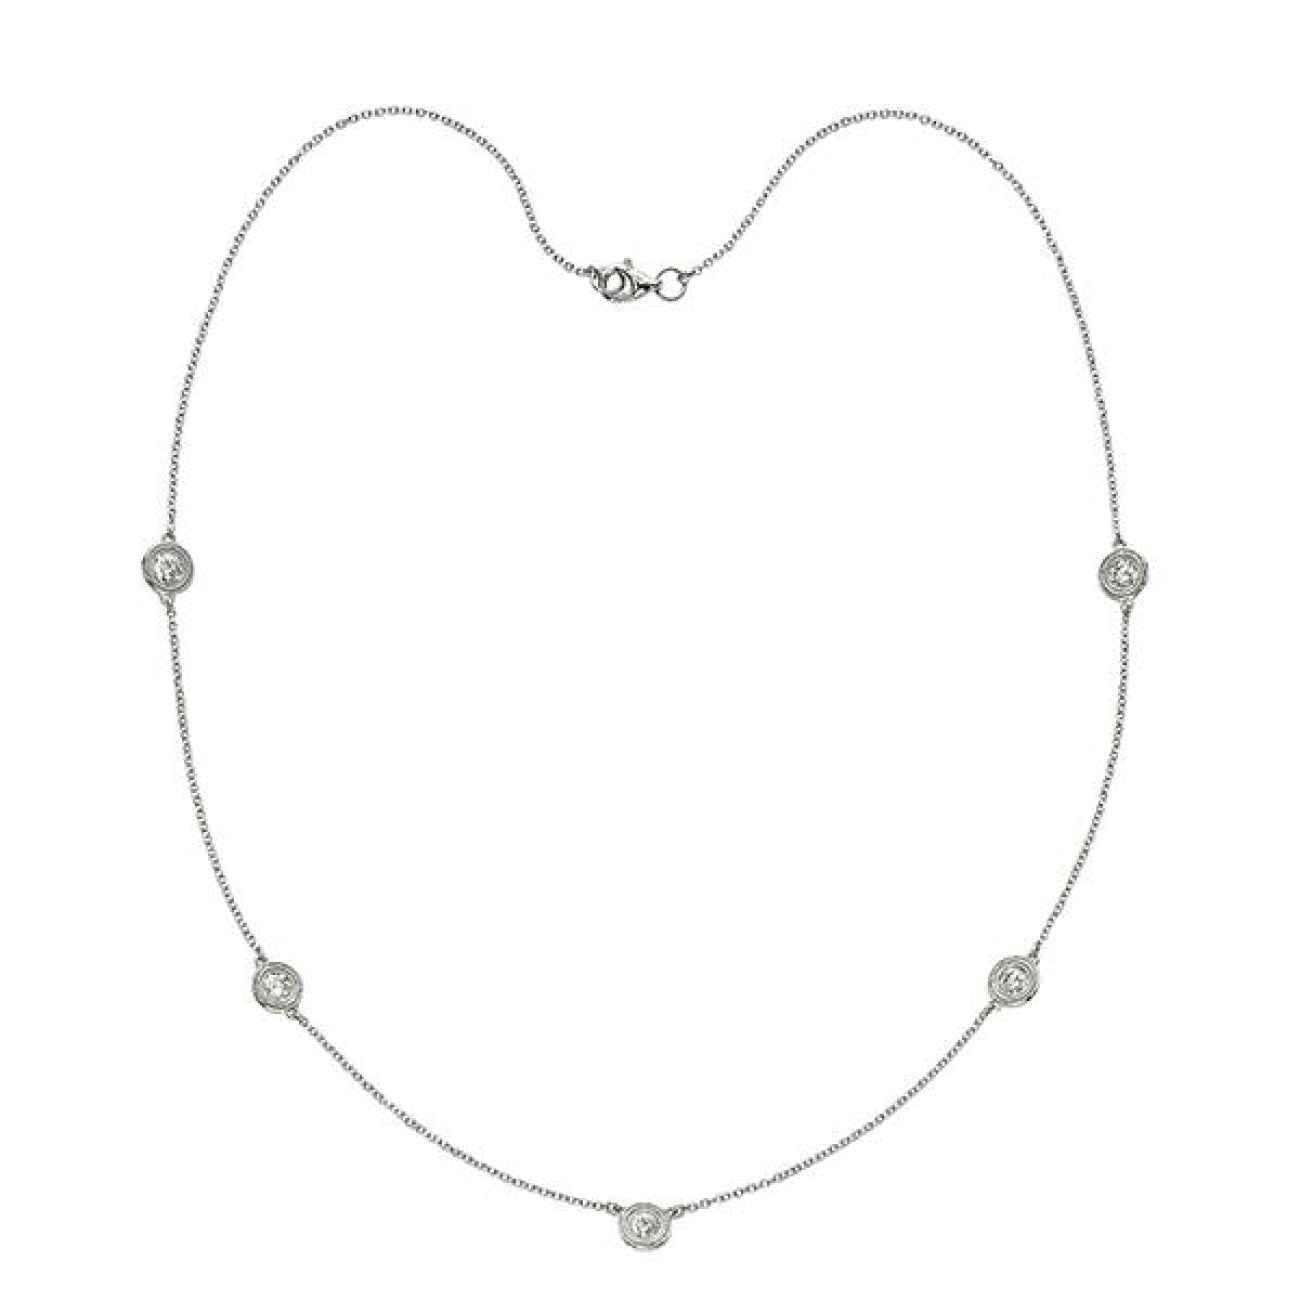 Manfredi Jewels Jewelry - Stone Diamond Necklace | Manfredi Jewels